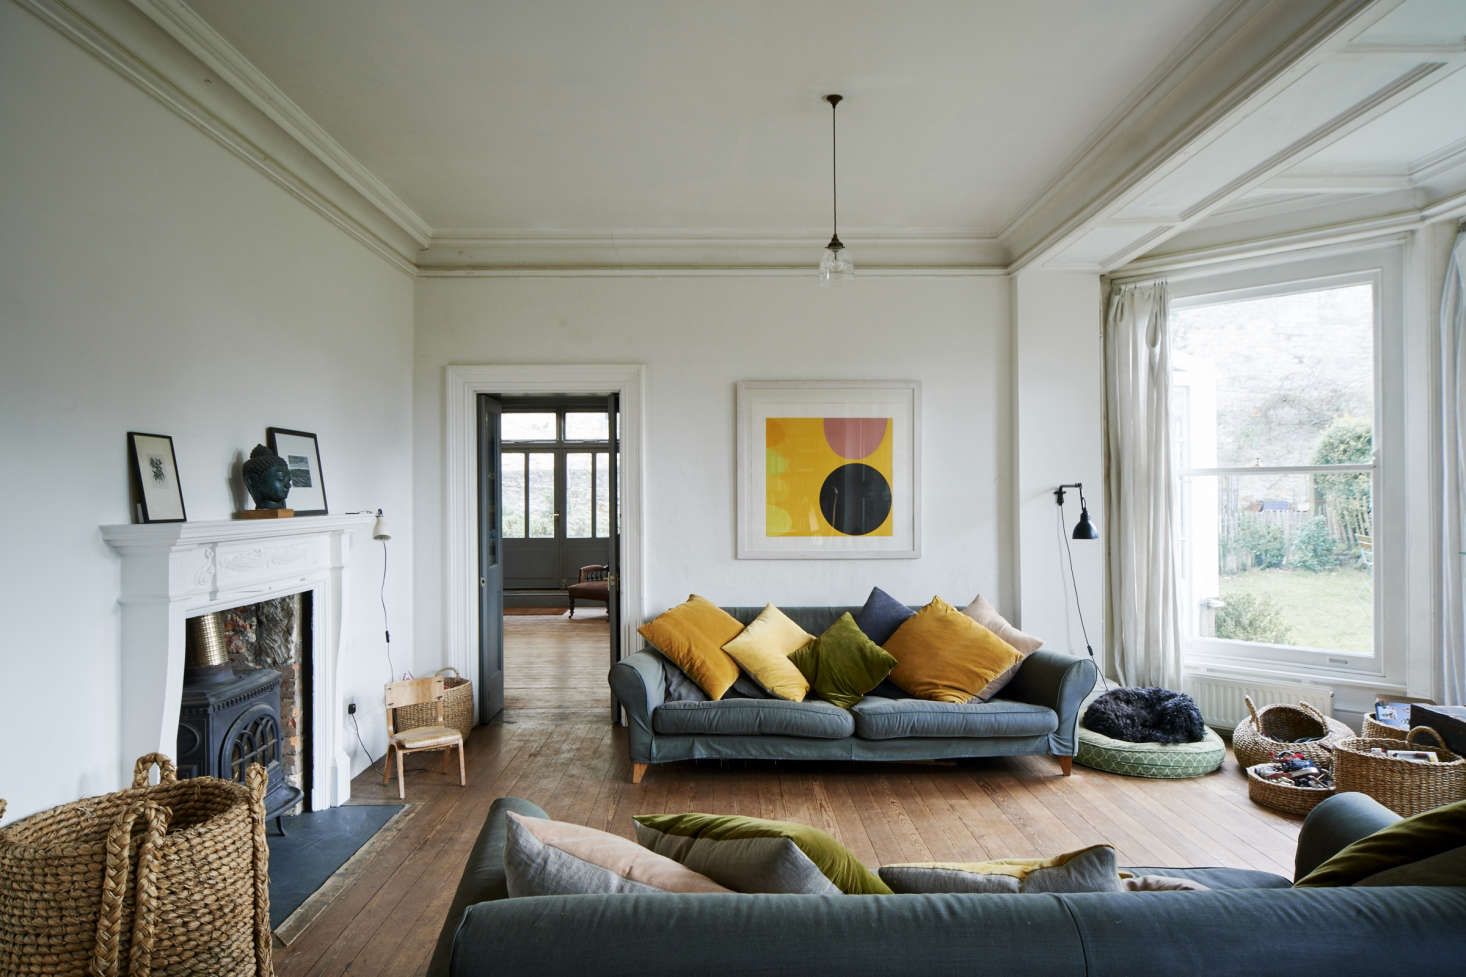 Kirsten Hecktermann's hand-dyed pillows in the living room of designer Niki Turner's house in Stroud, Gloucestershire.